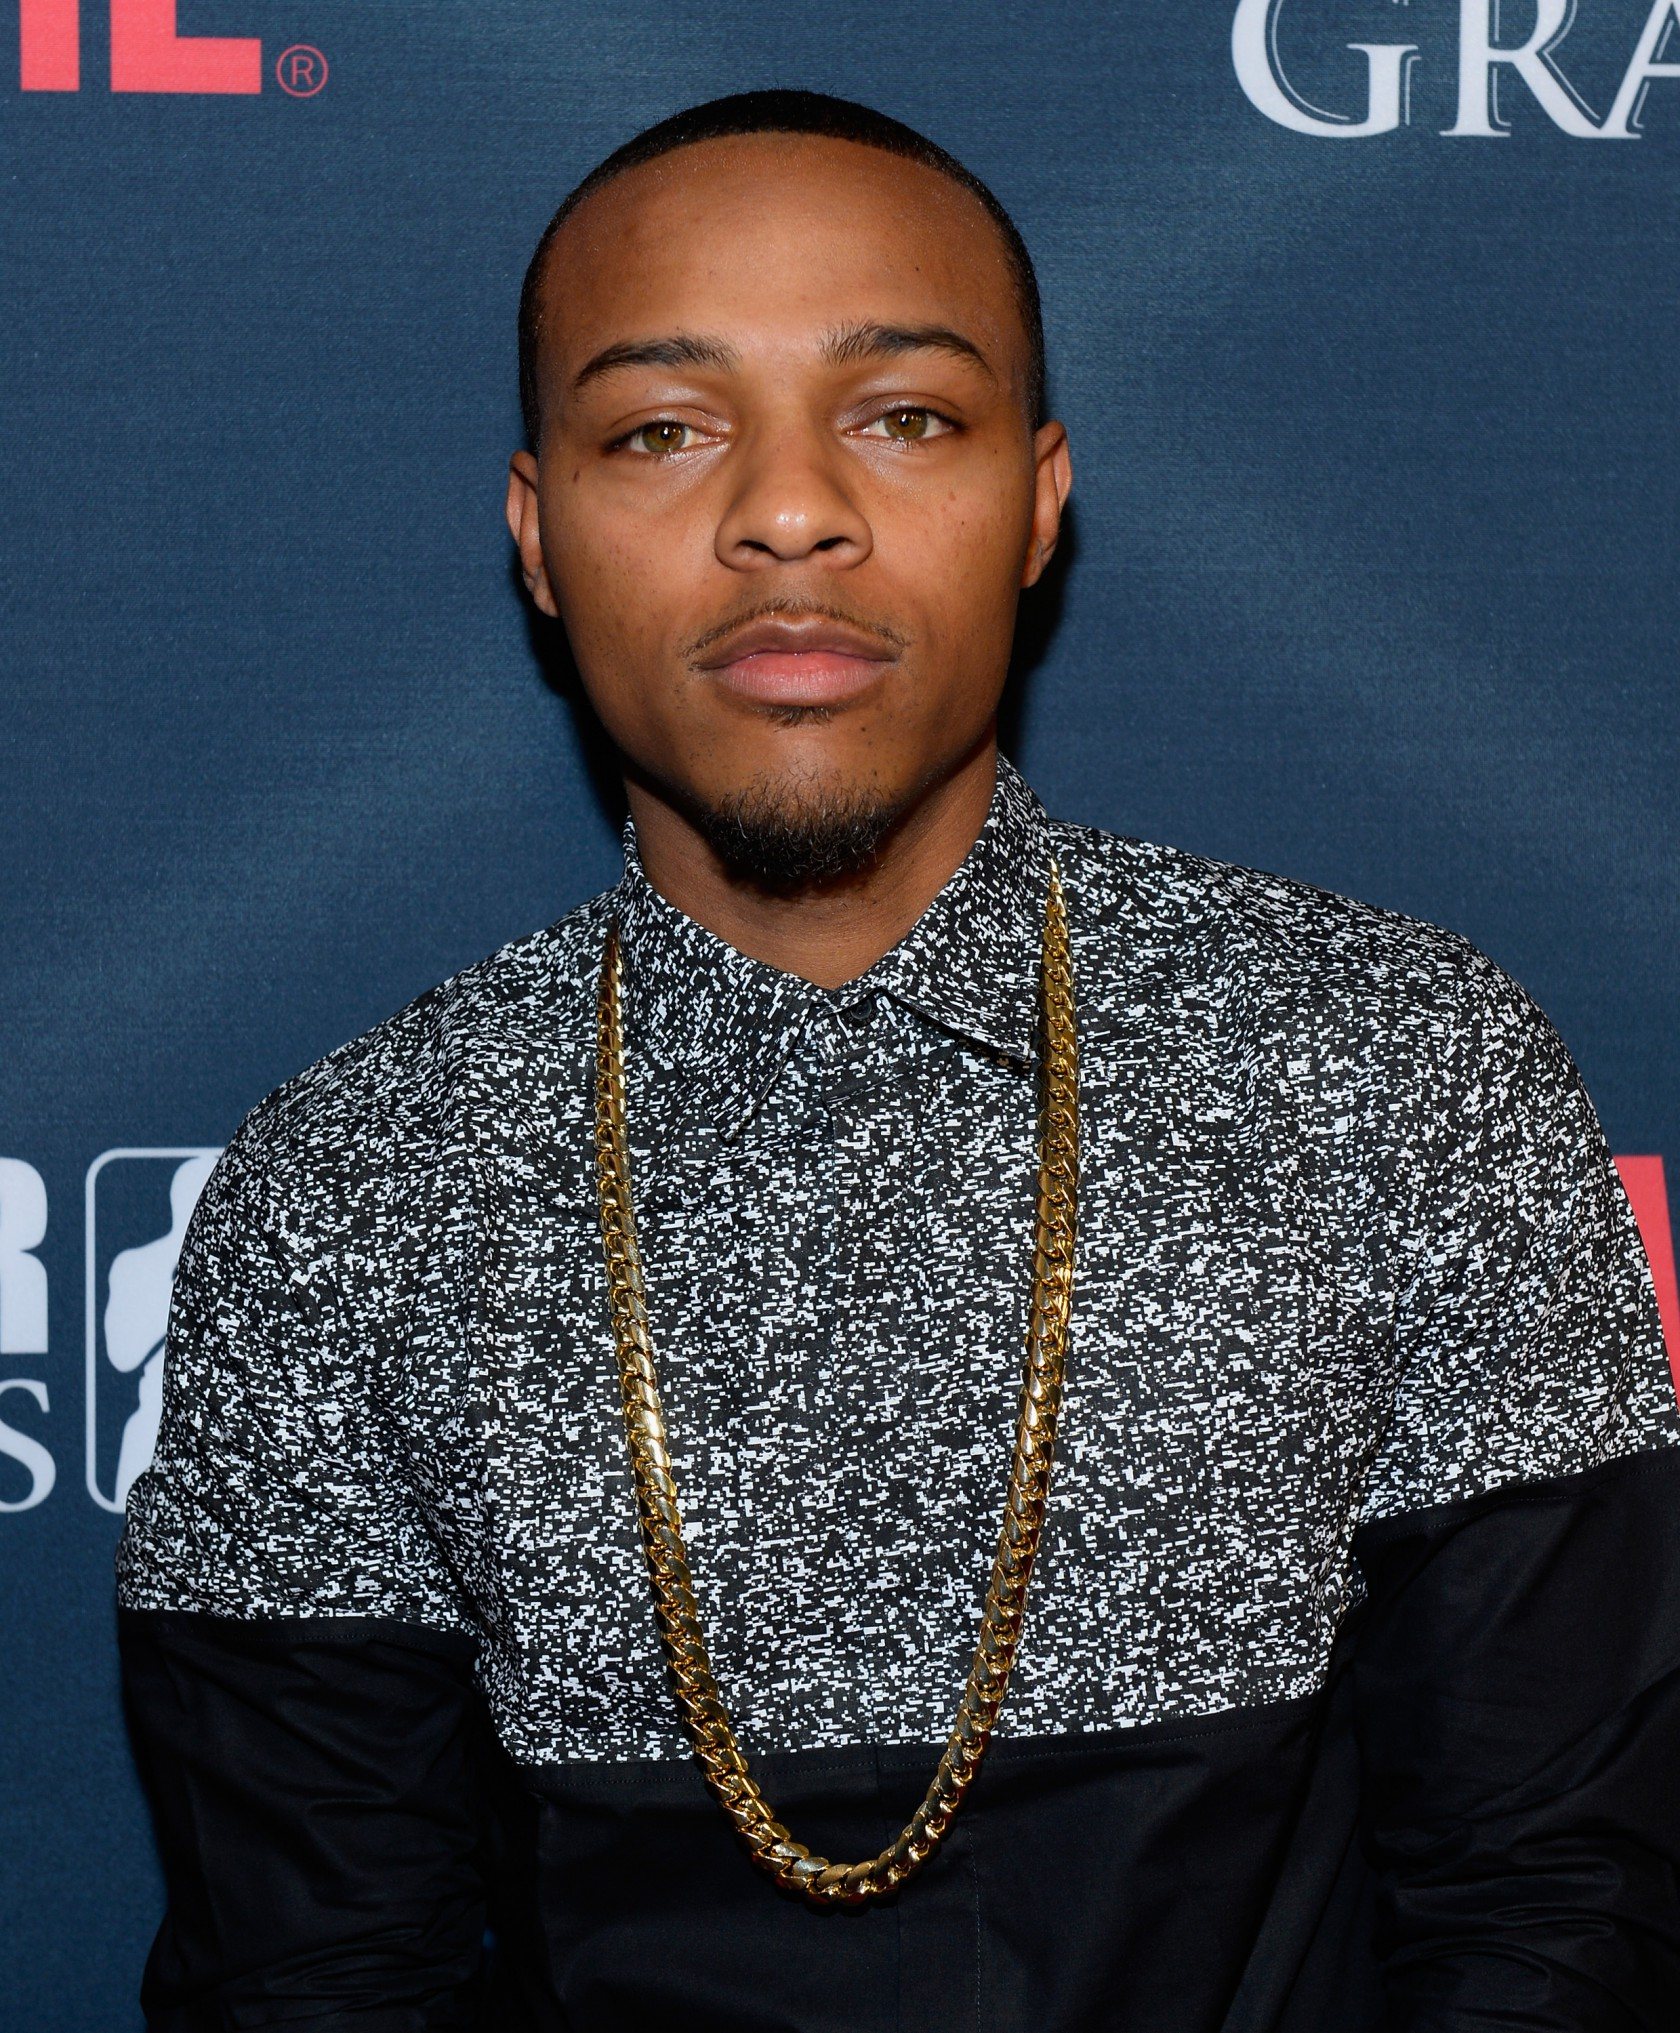 Bow Wow's Father Puts Him On Blast In Open Letter